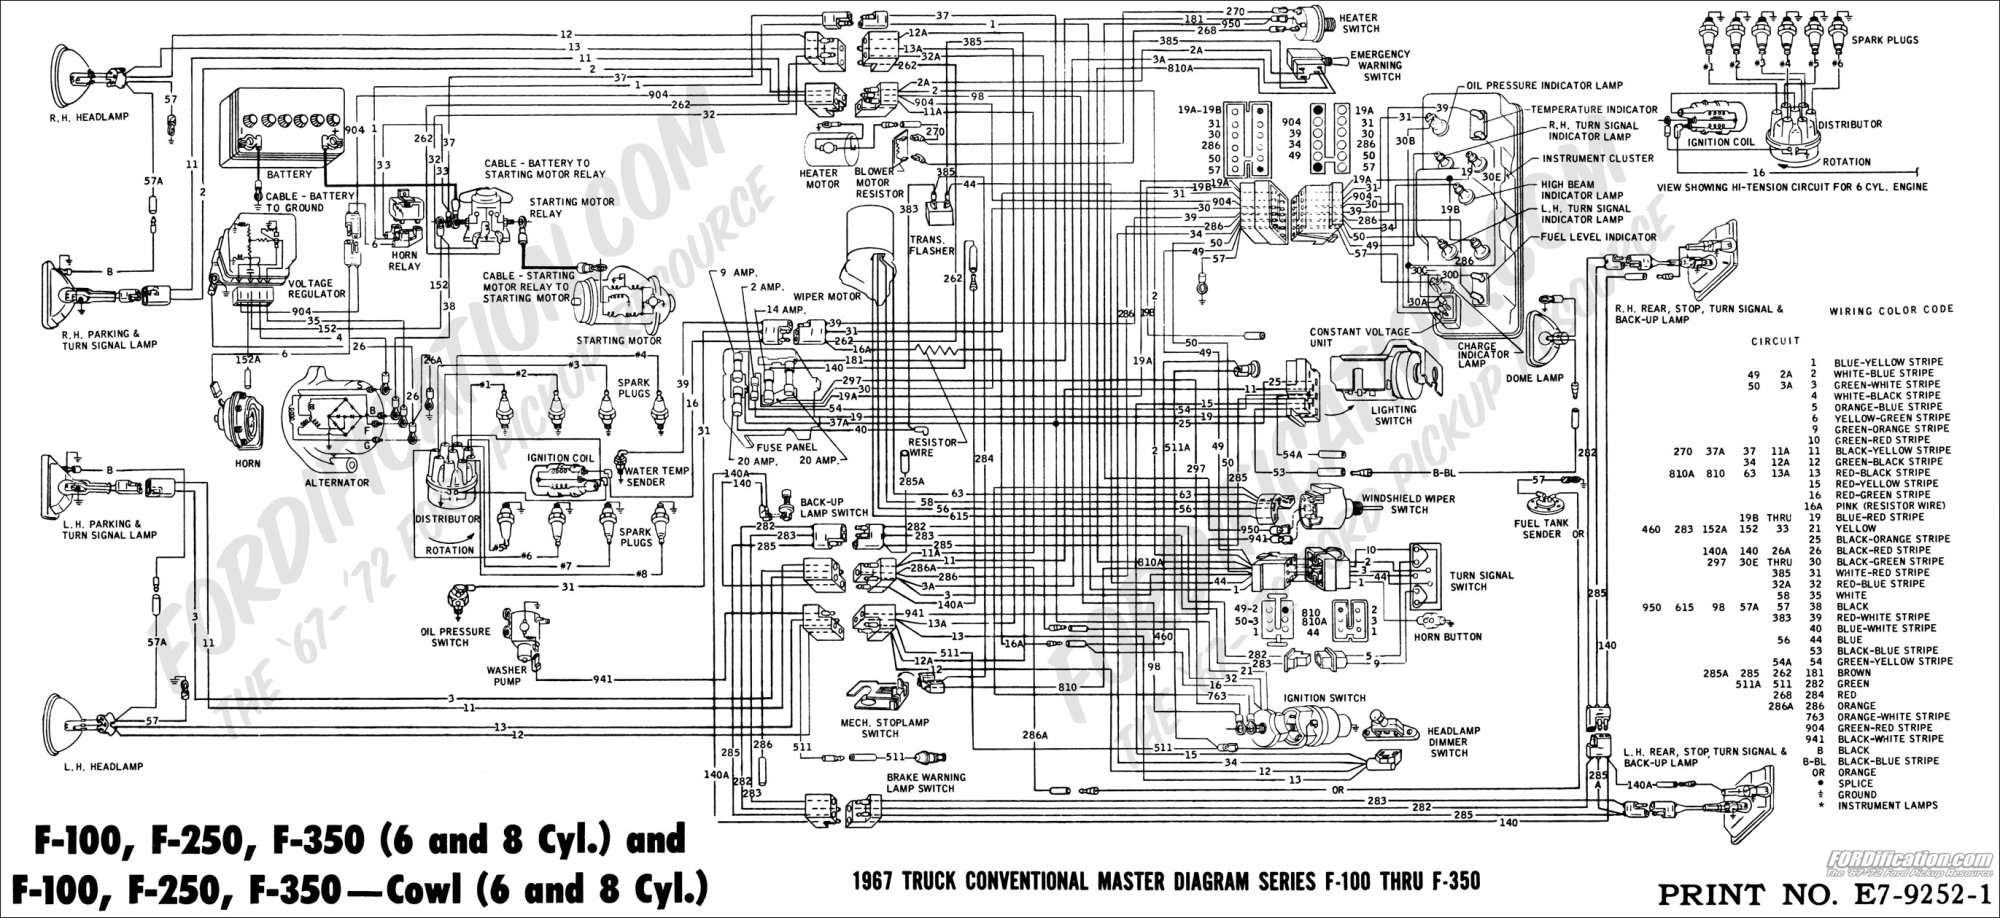 hight resolution of 1989 ford f 150 wiring diagram wiring library 1997 ford f 150 heater wiring schematic 1989 f150 wiring schematic